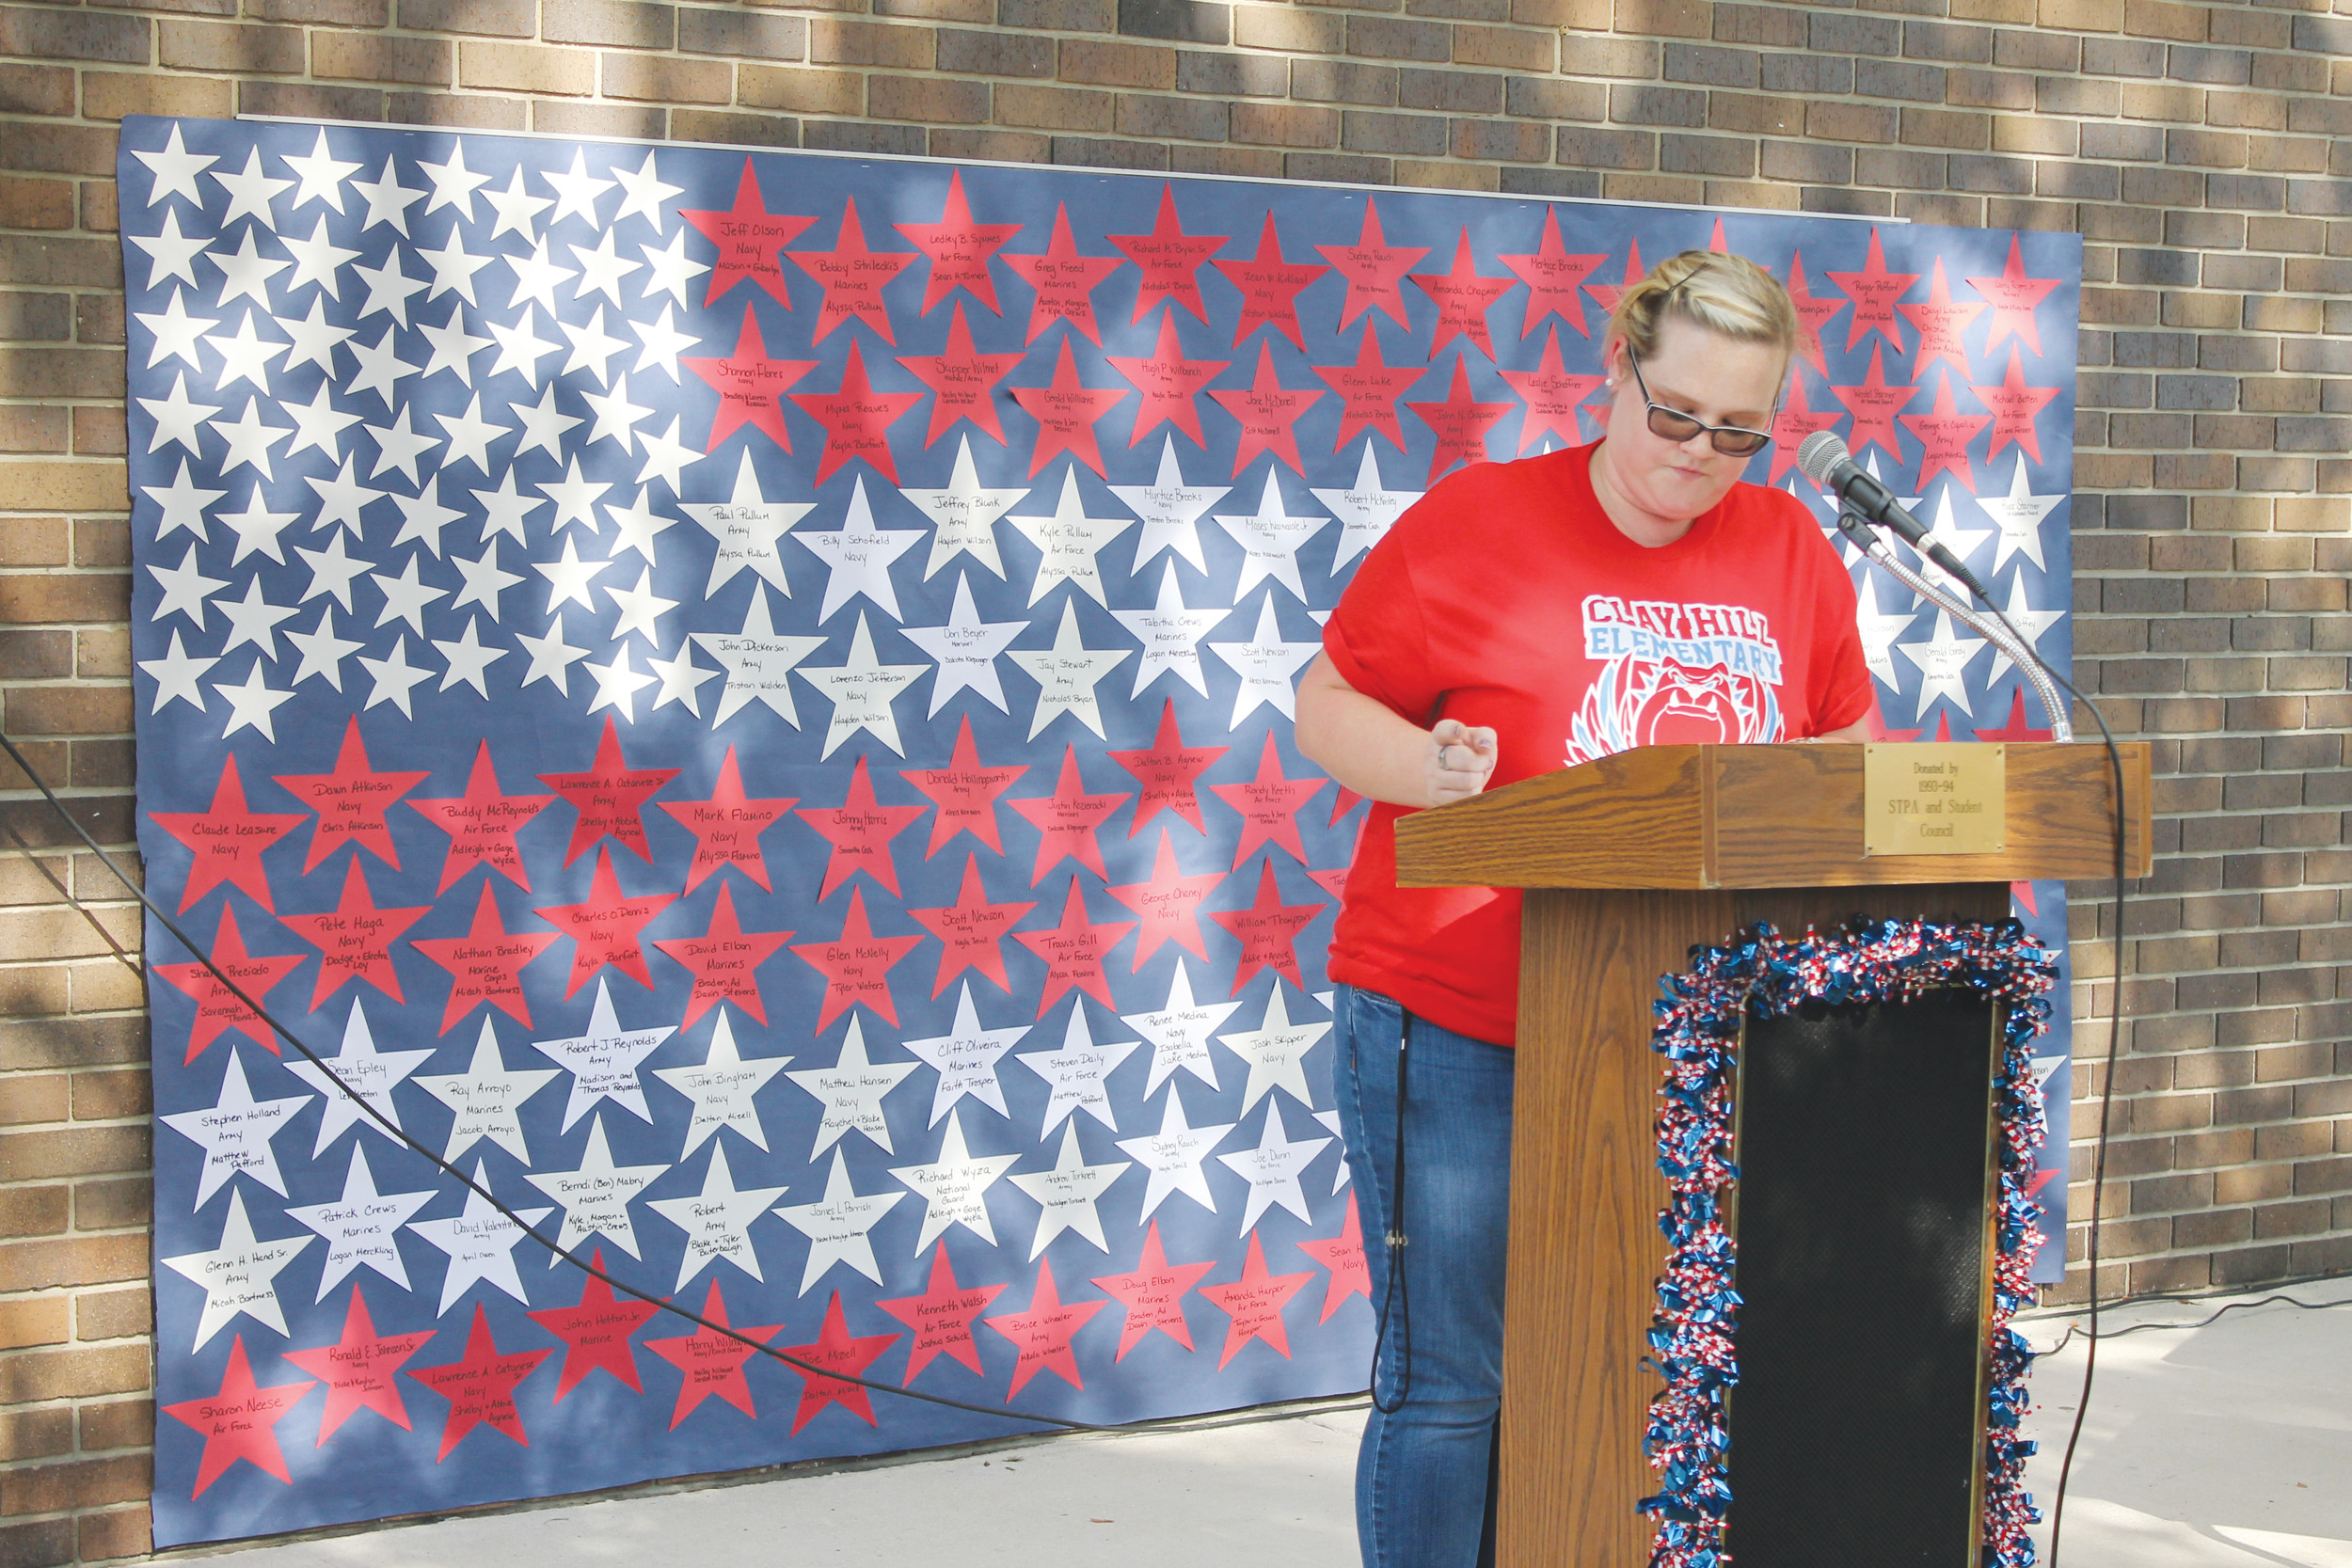 Proposal Essay Clay Hill Elementary School Celebrated Americas Veterans On Nov  With  Essays And Song Compare And Contrast Essay Sample Paper also Mental Health Essay Students Celebrate Veterans Day With Song  Clay Today Essay On Business Management